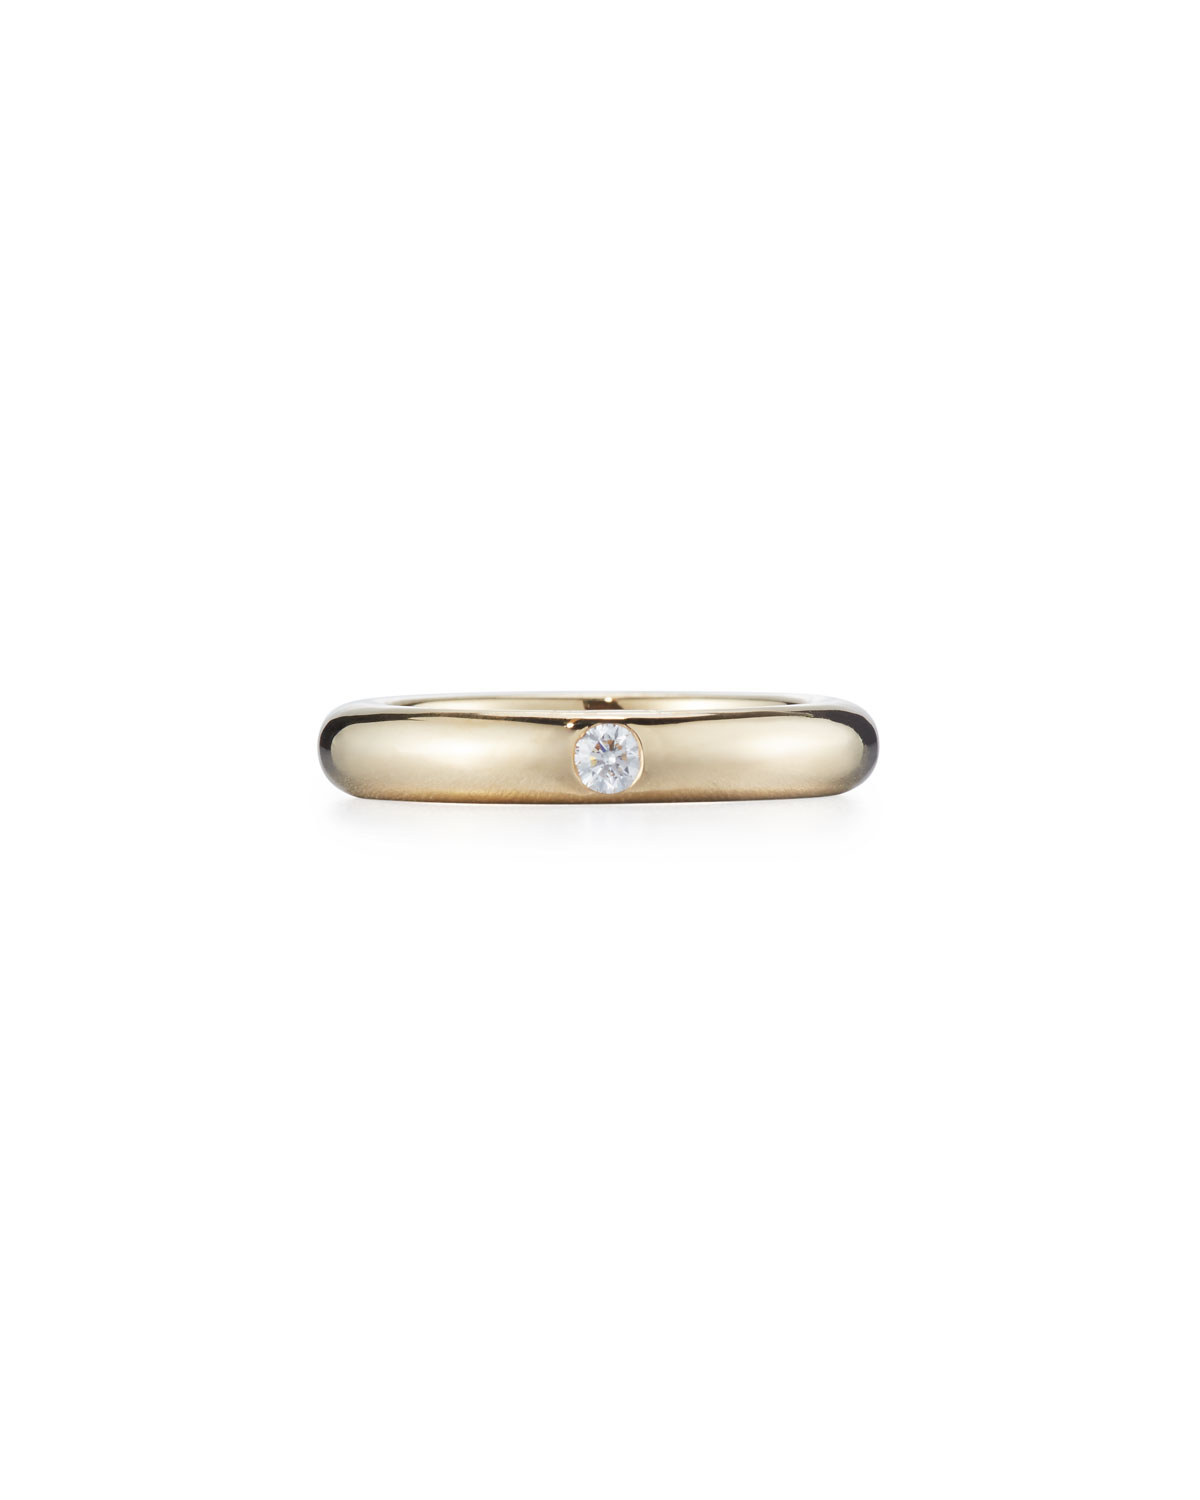 Adolfo Courrier Pop 18K Yellow Gold Ring with One White Diamond, Size 6.5